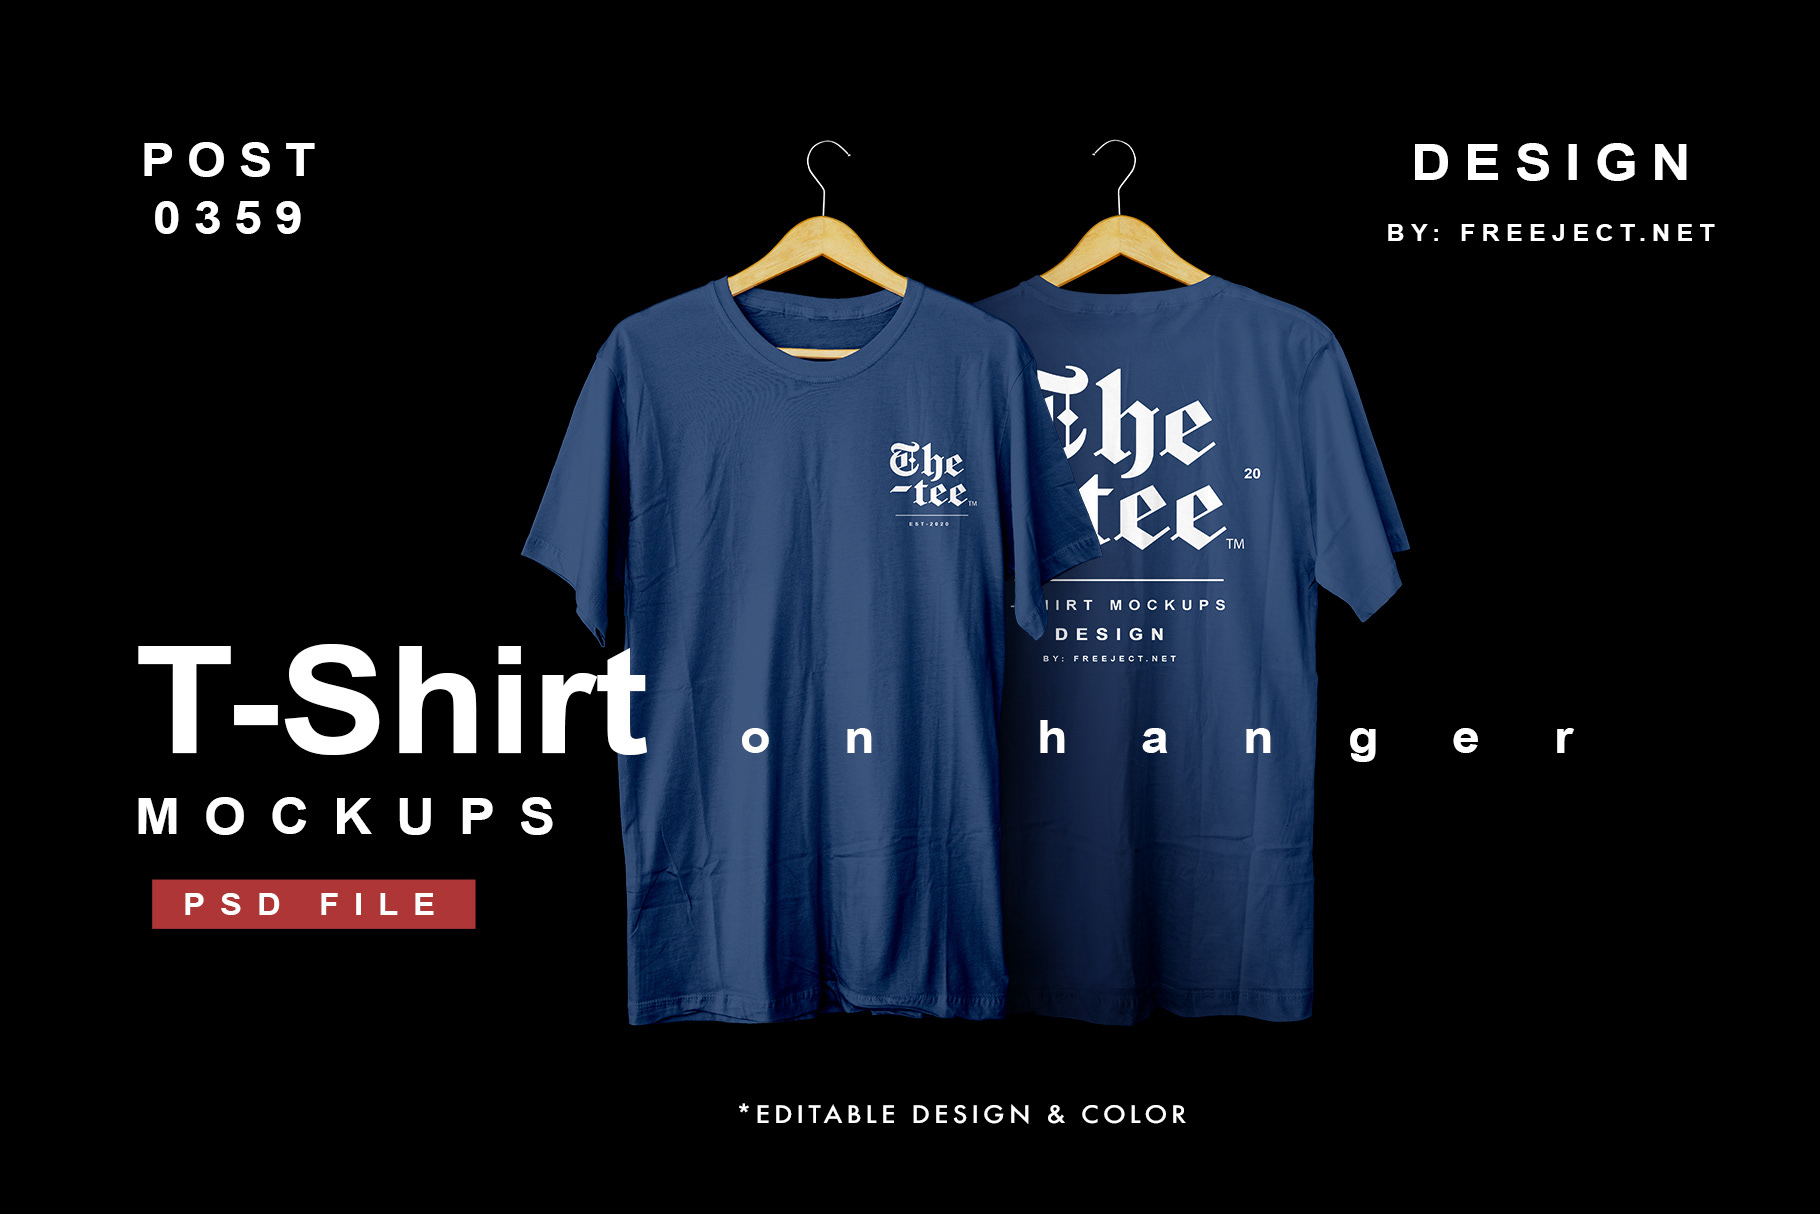 Download Men S T Shirt Mockup Projects Photos Videos Logos Illustrations And Branding On Behance PSD Mockup Templates